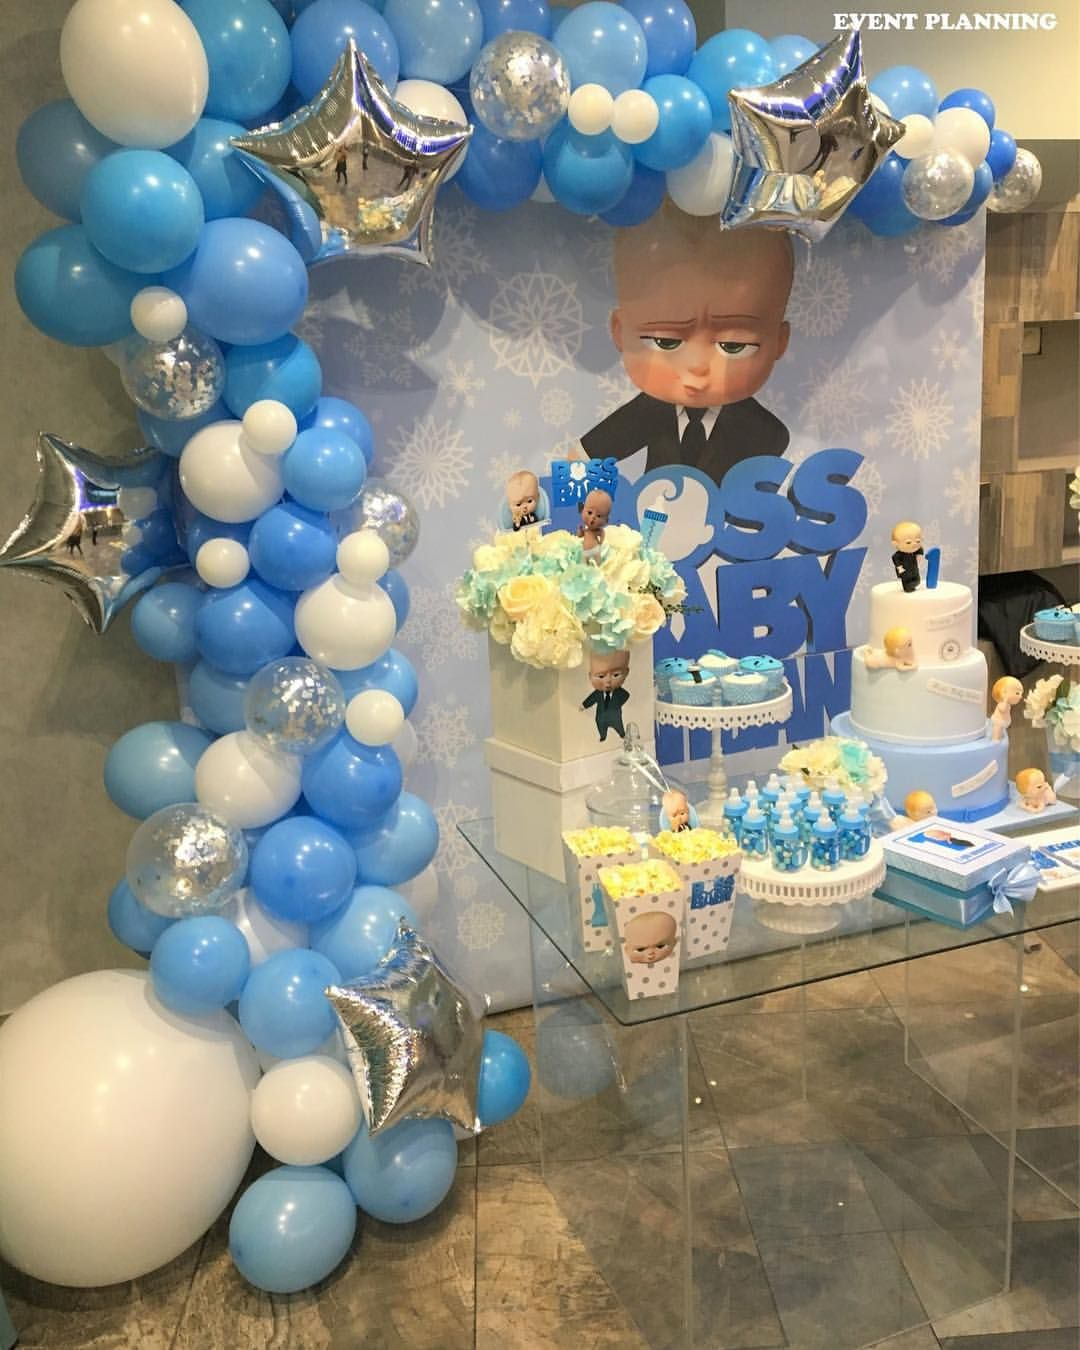 Boss Baby Party  #bossbabyparty #bossbabypartyideas # ...